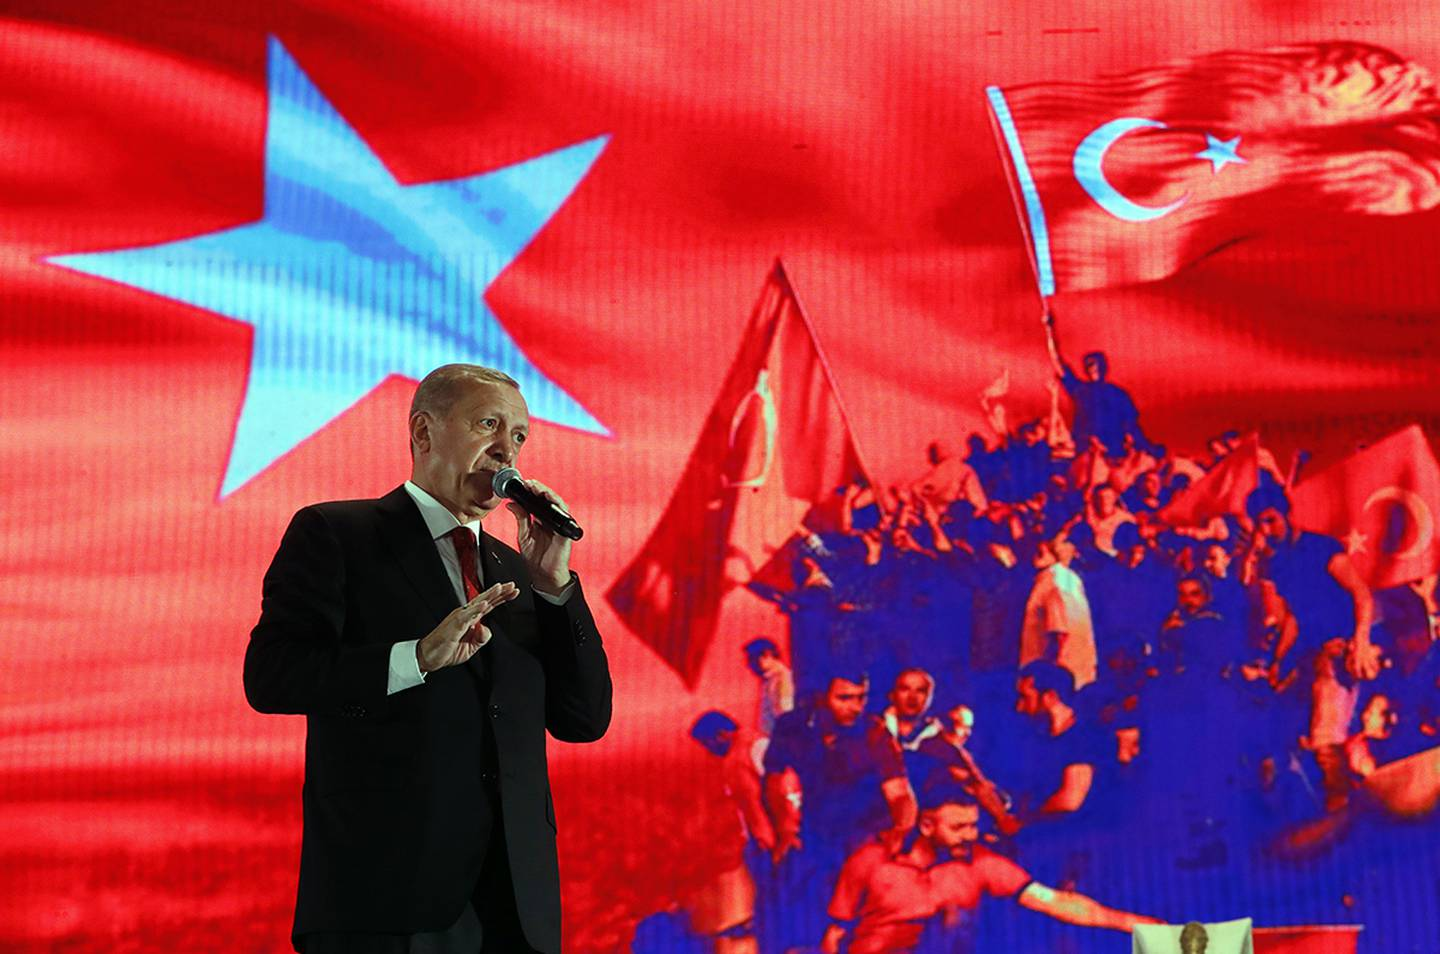 In this file photo dated July 15, 2019, Turkey's President Recep Tayyip Erdogan delivers a speech at a rally to honor the victims of the July 15, 2016, failed coup attempt, in Istanbul.